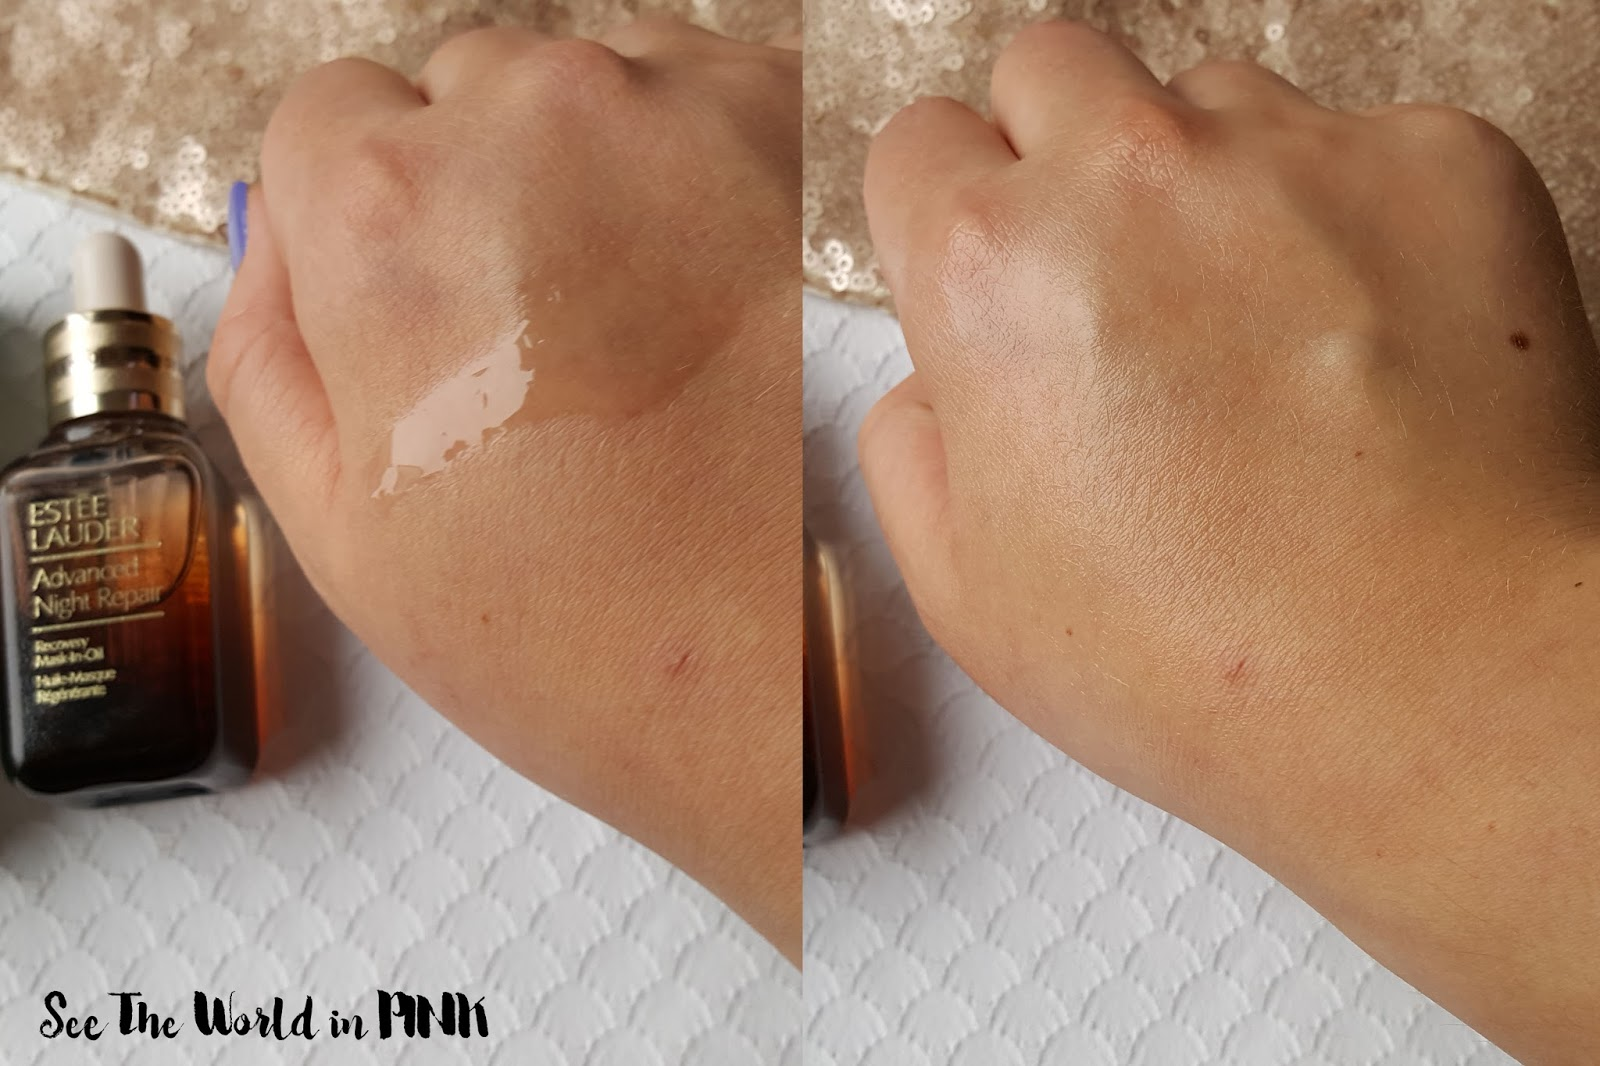 Skincare Sunday - Estee Lauder Advanced Night Repair Recovery Mask-In-Oil Review!